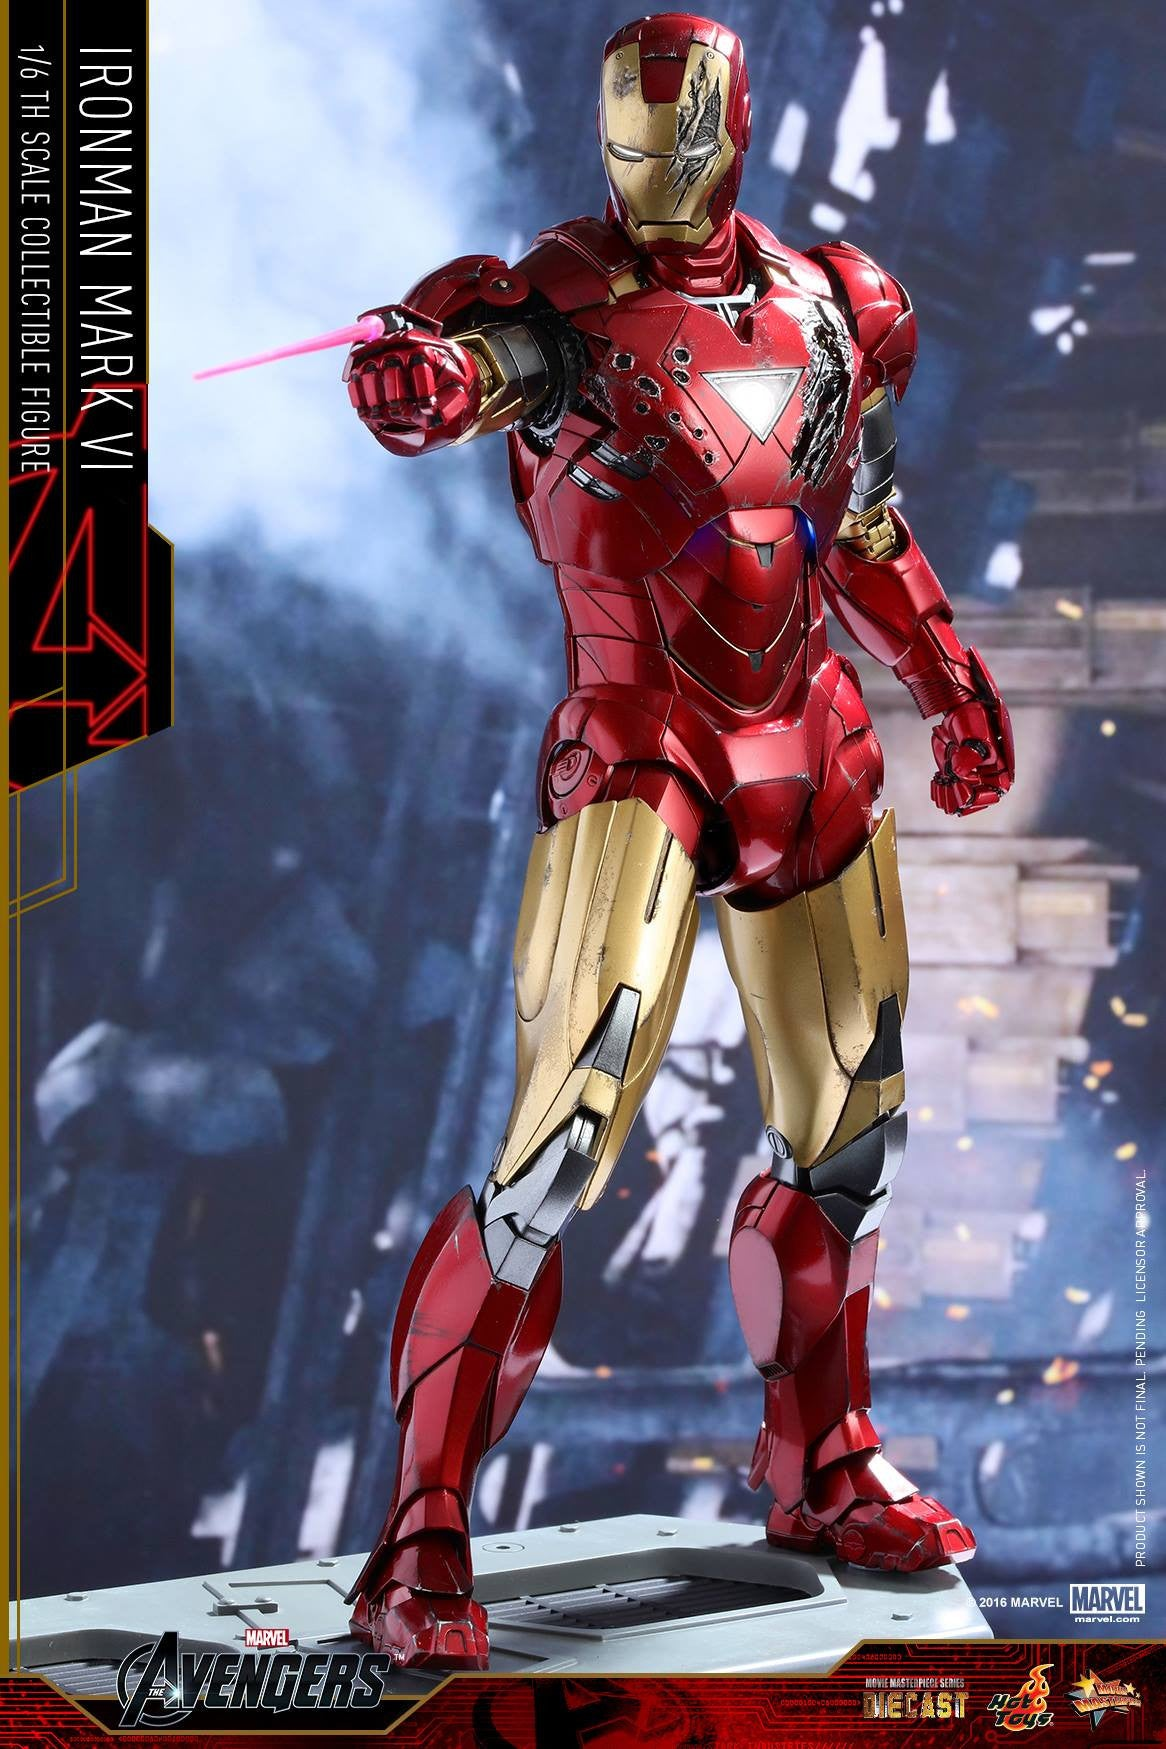 Hot Toys - MMS378D17 - The Avengers - Iron Man Mark VI (DIECAST) (Normal Edition) - Marvelous Toys - 7